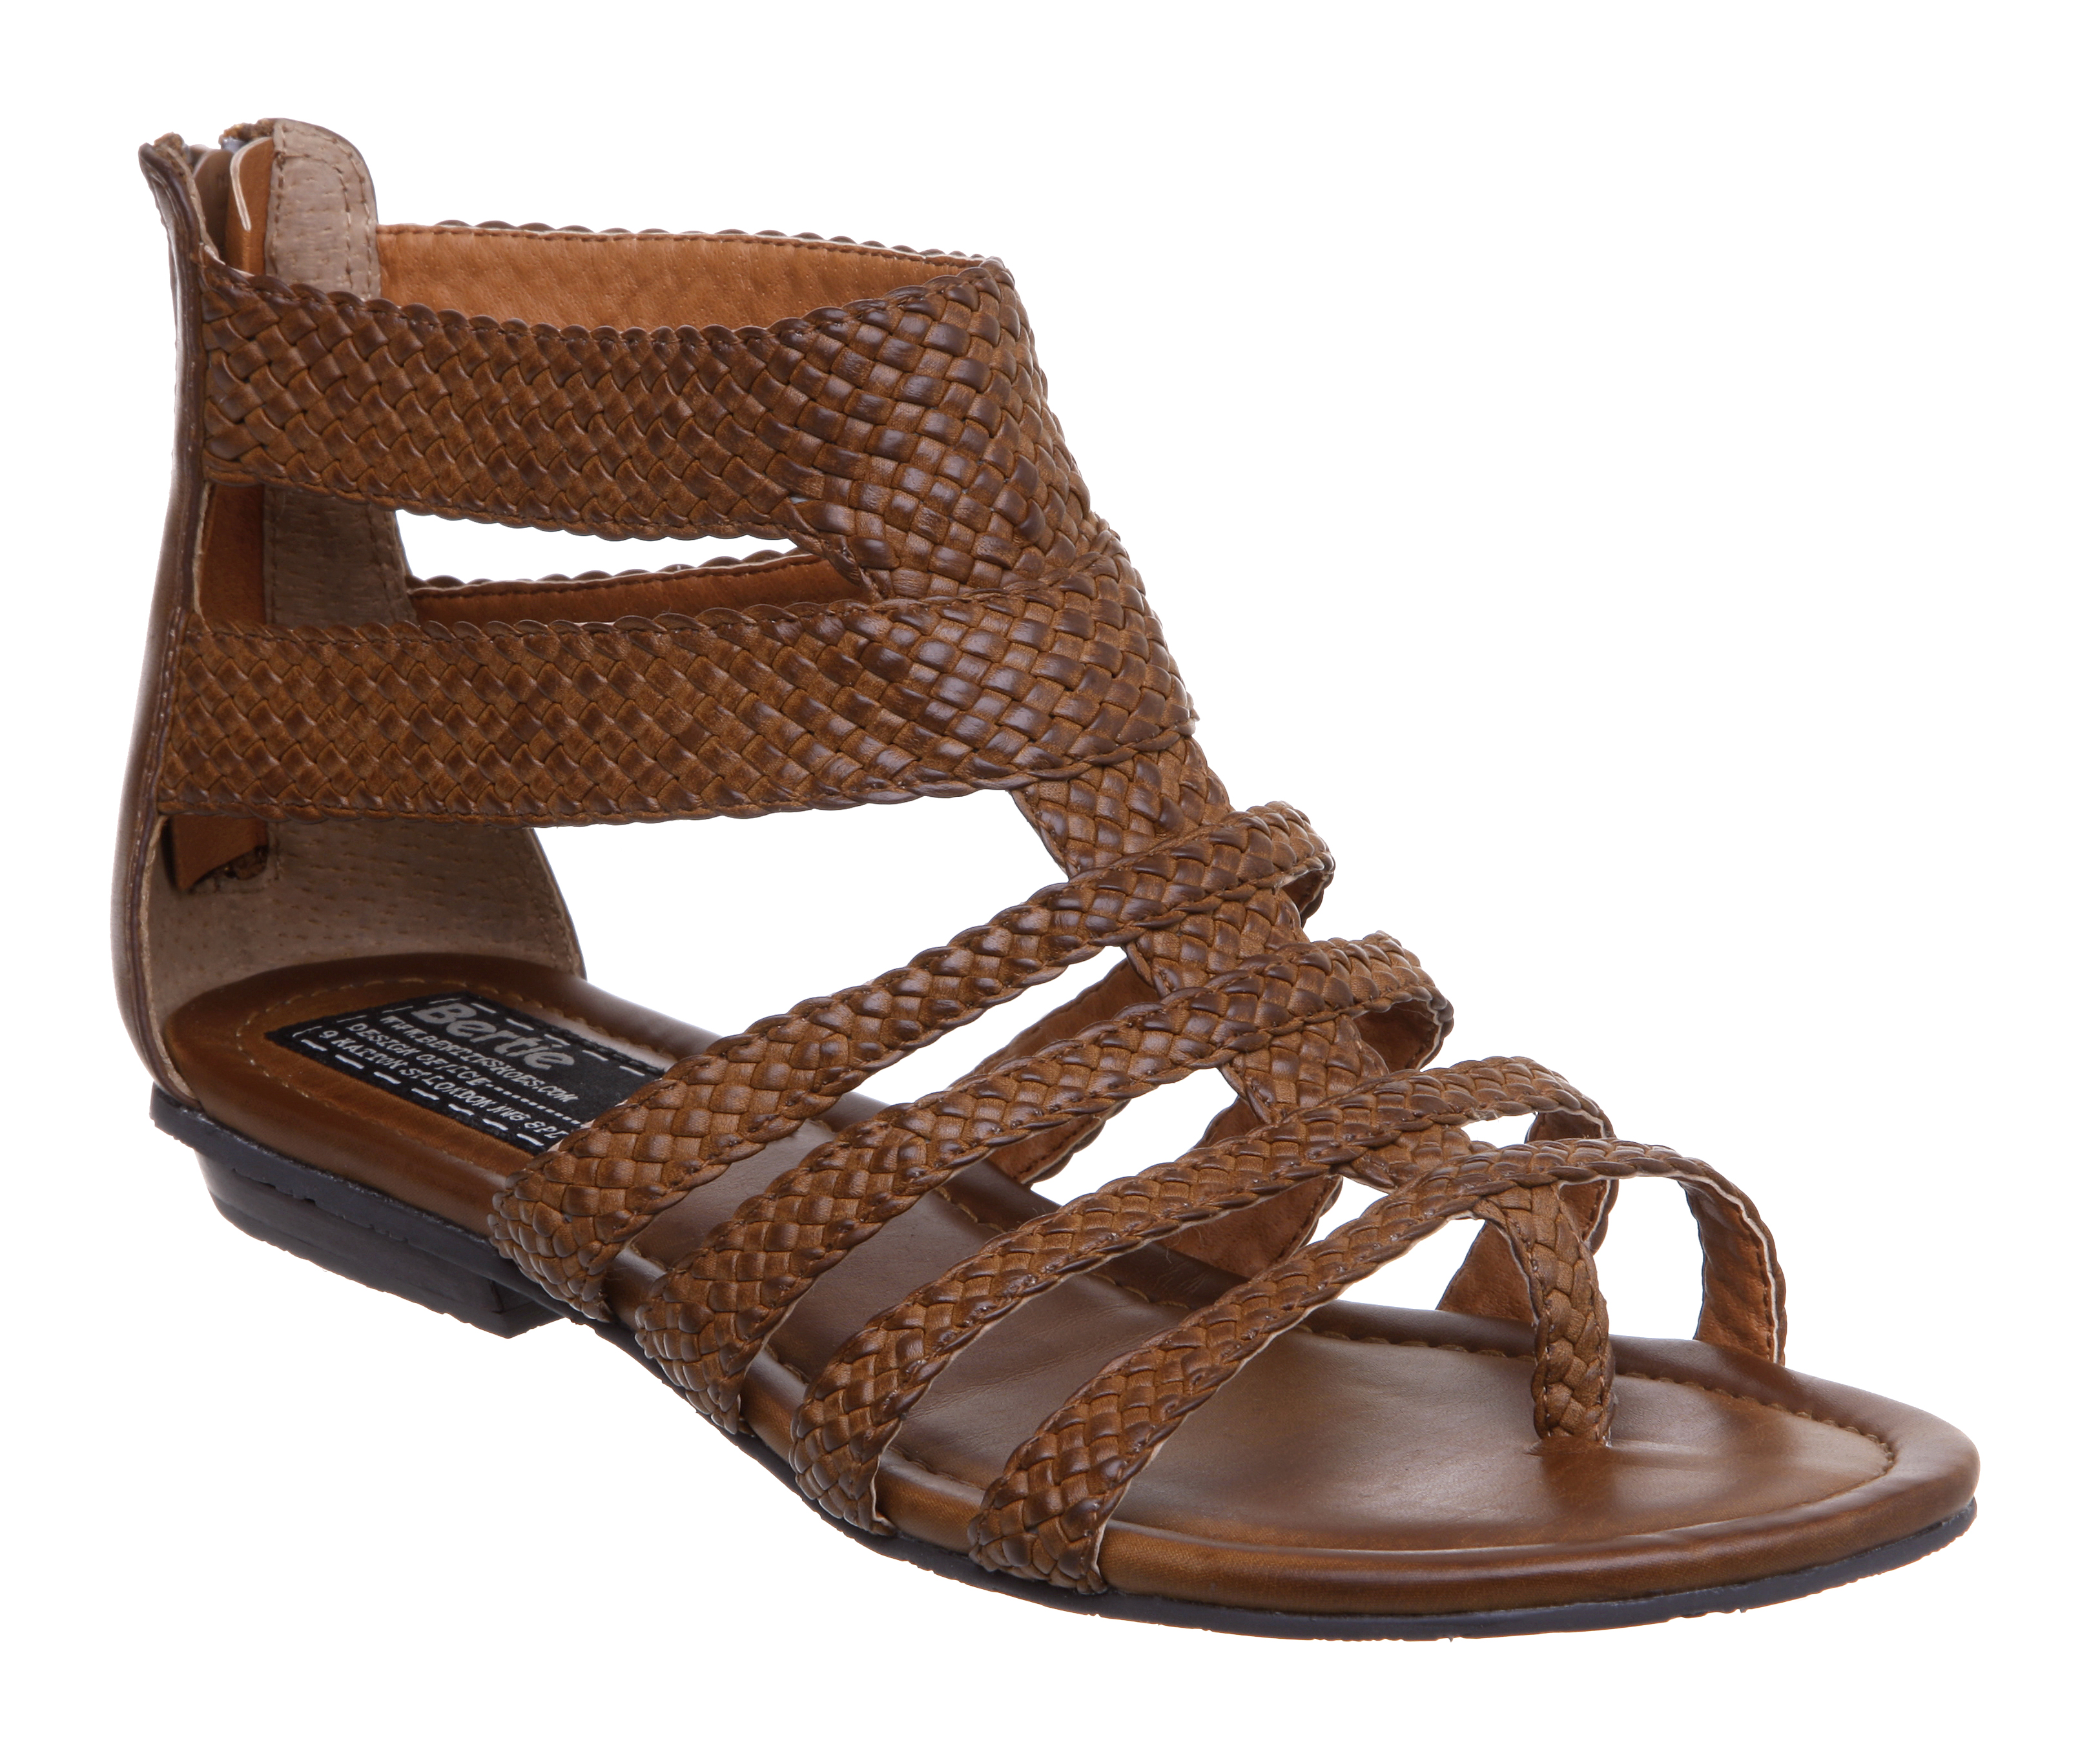 Amazing  Shoes For Women L Brown Sandals With Cork Heel Designer Shoes SRW08